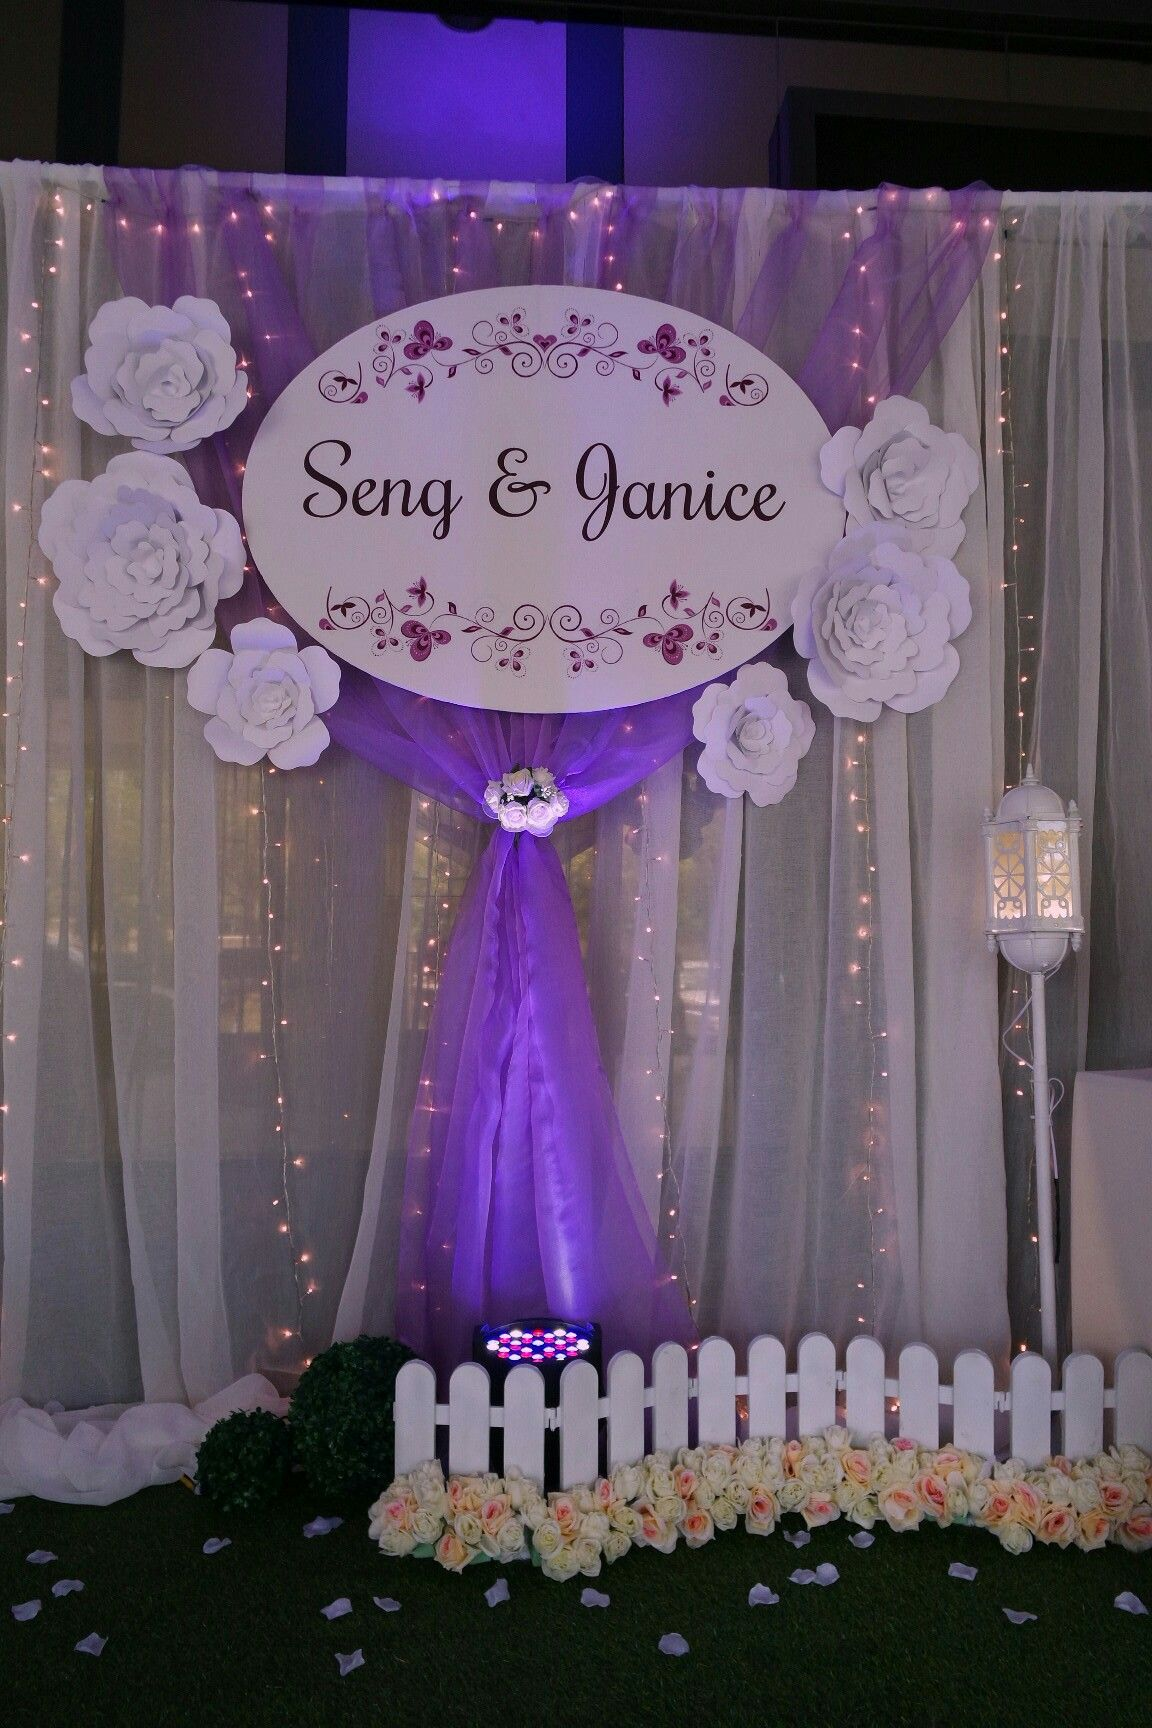 Wedding backdrop decorations pinterest johor bahru and public johor bahru weddingdecorationscasamentomarriagedecorationweddings ornamentsdekorationmariage junglespirit